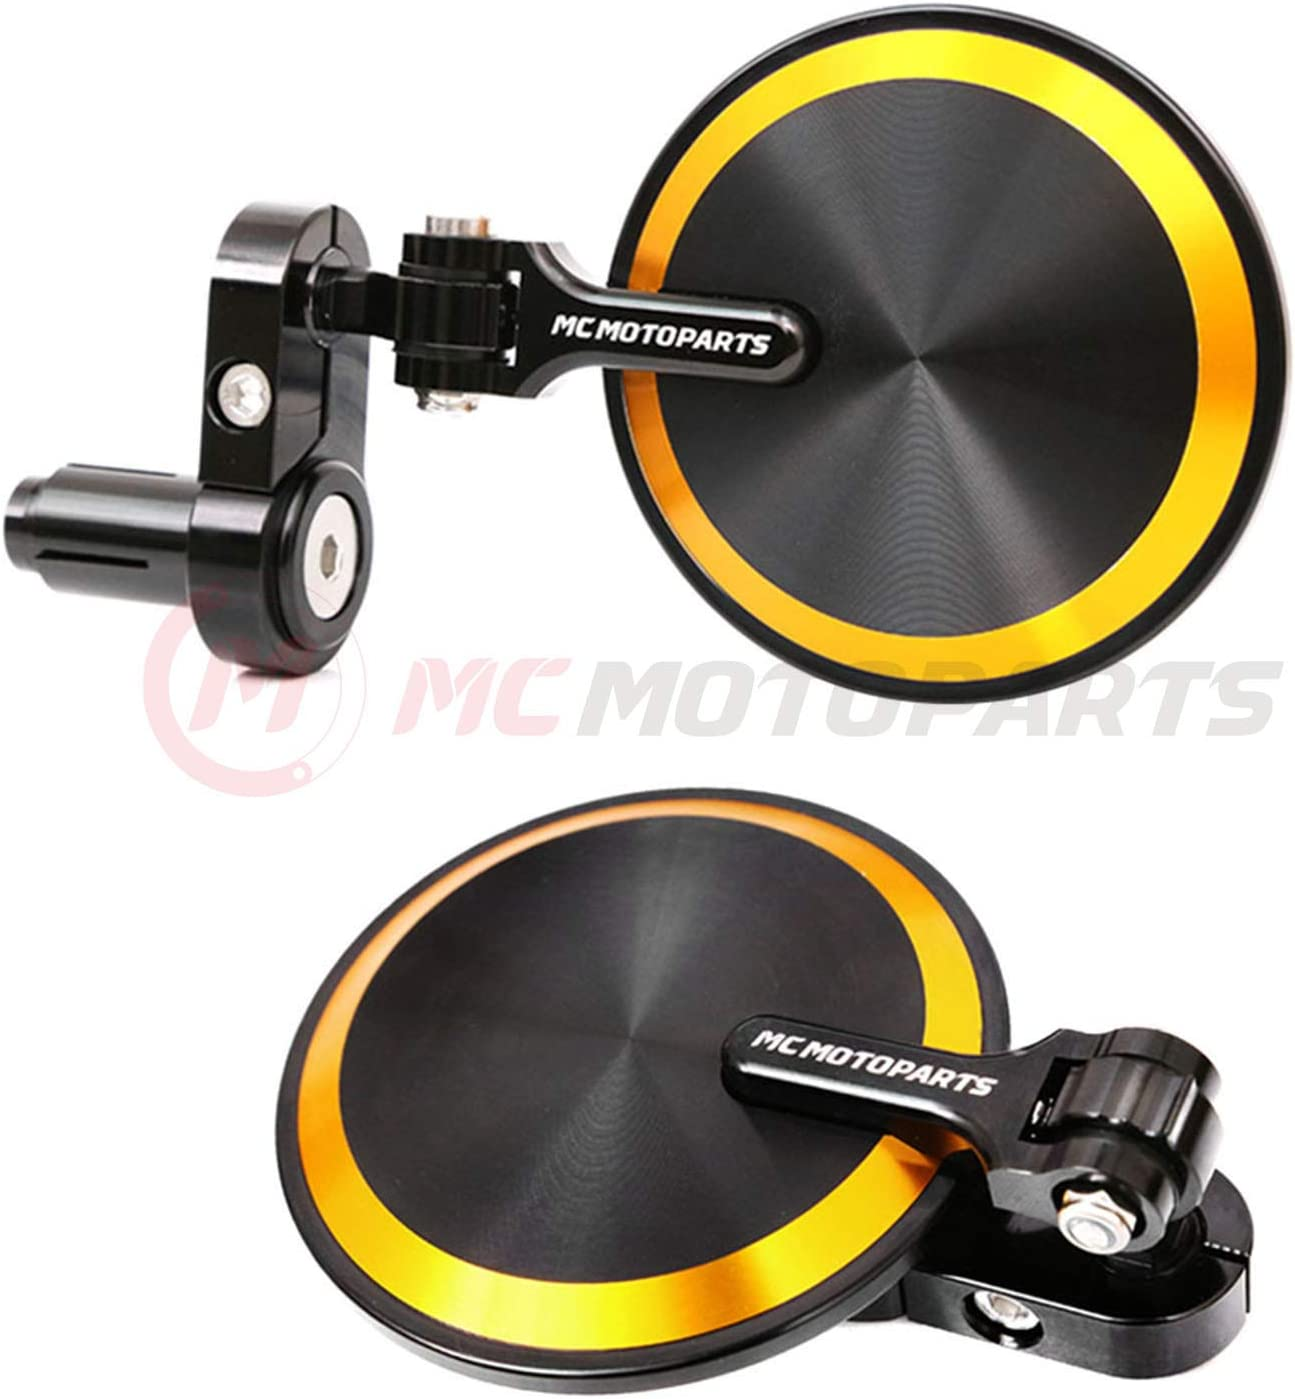 MC Motoparts Gold Reborn CNC Compatible Bar Mirrors Rearview Online limited product online shopping End